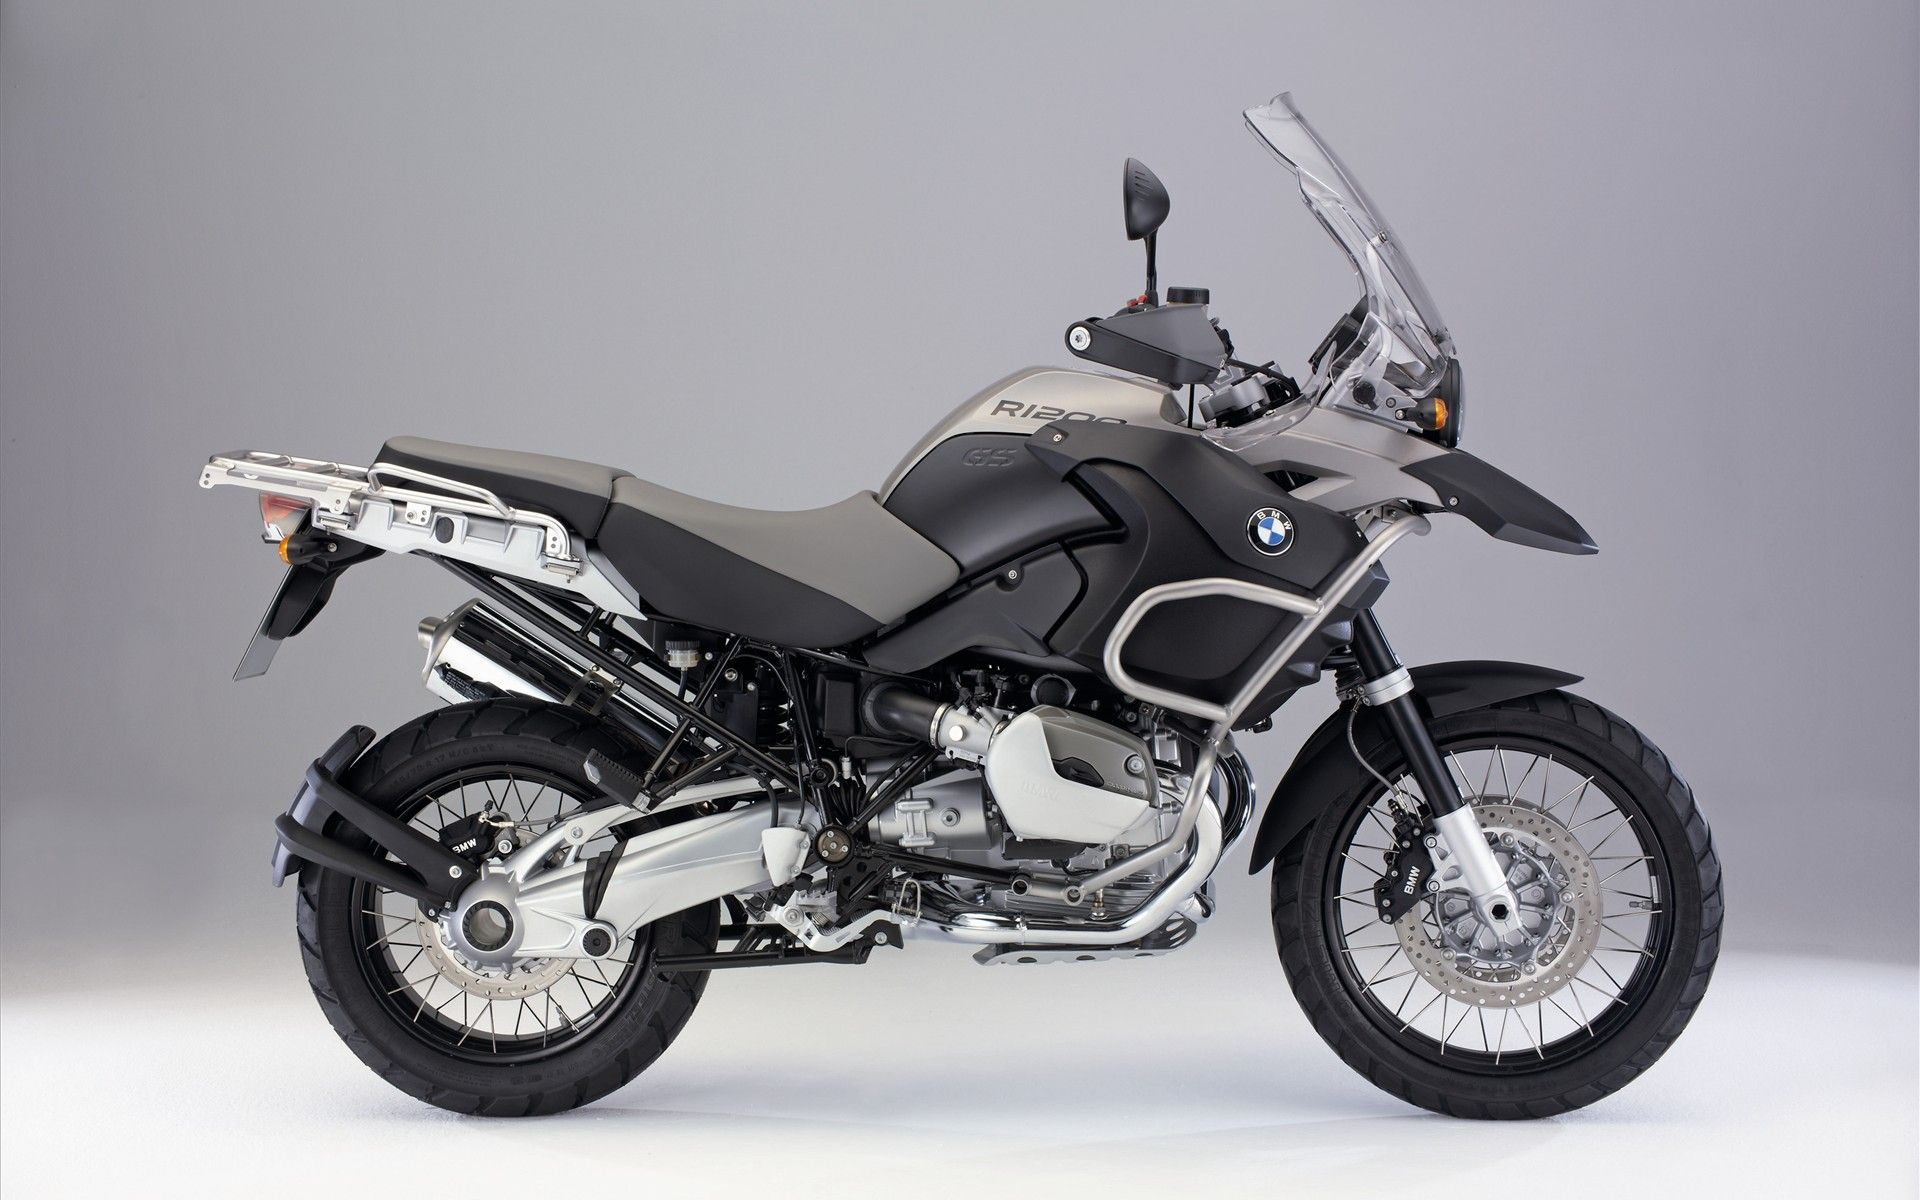 download bmw 1200 r motorcycles pictures for free to set as